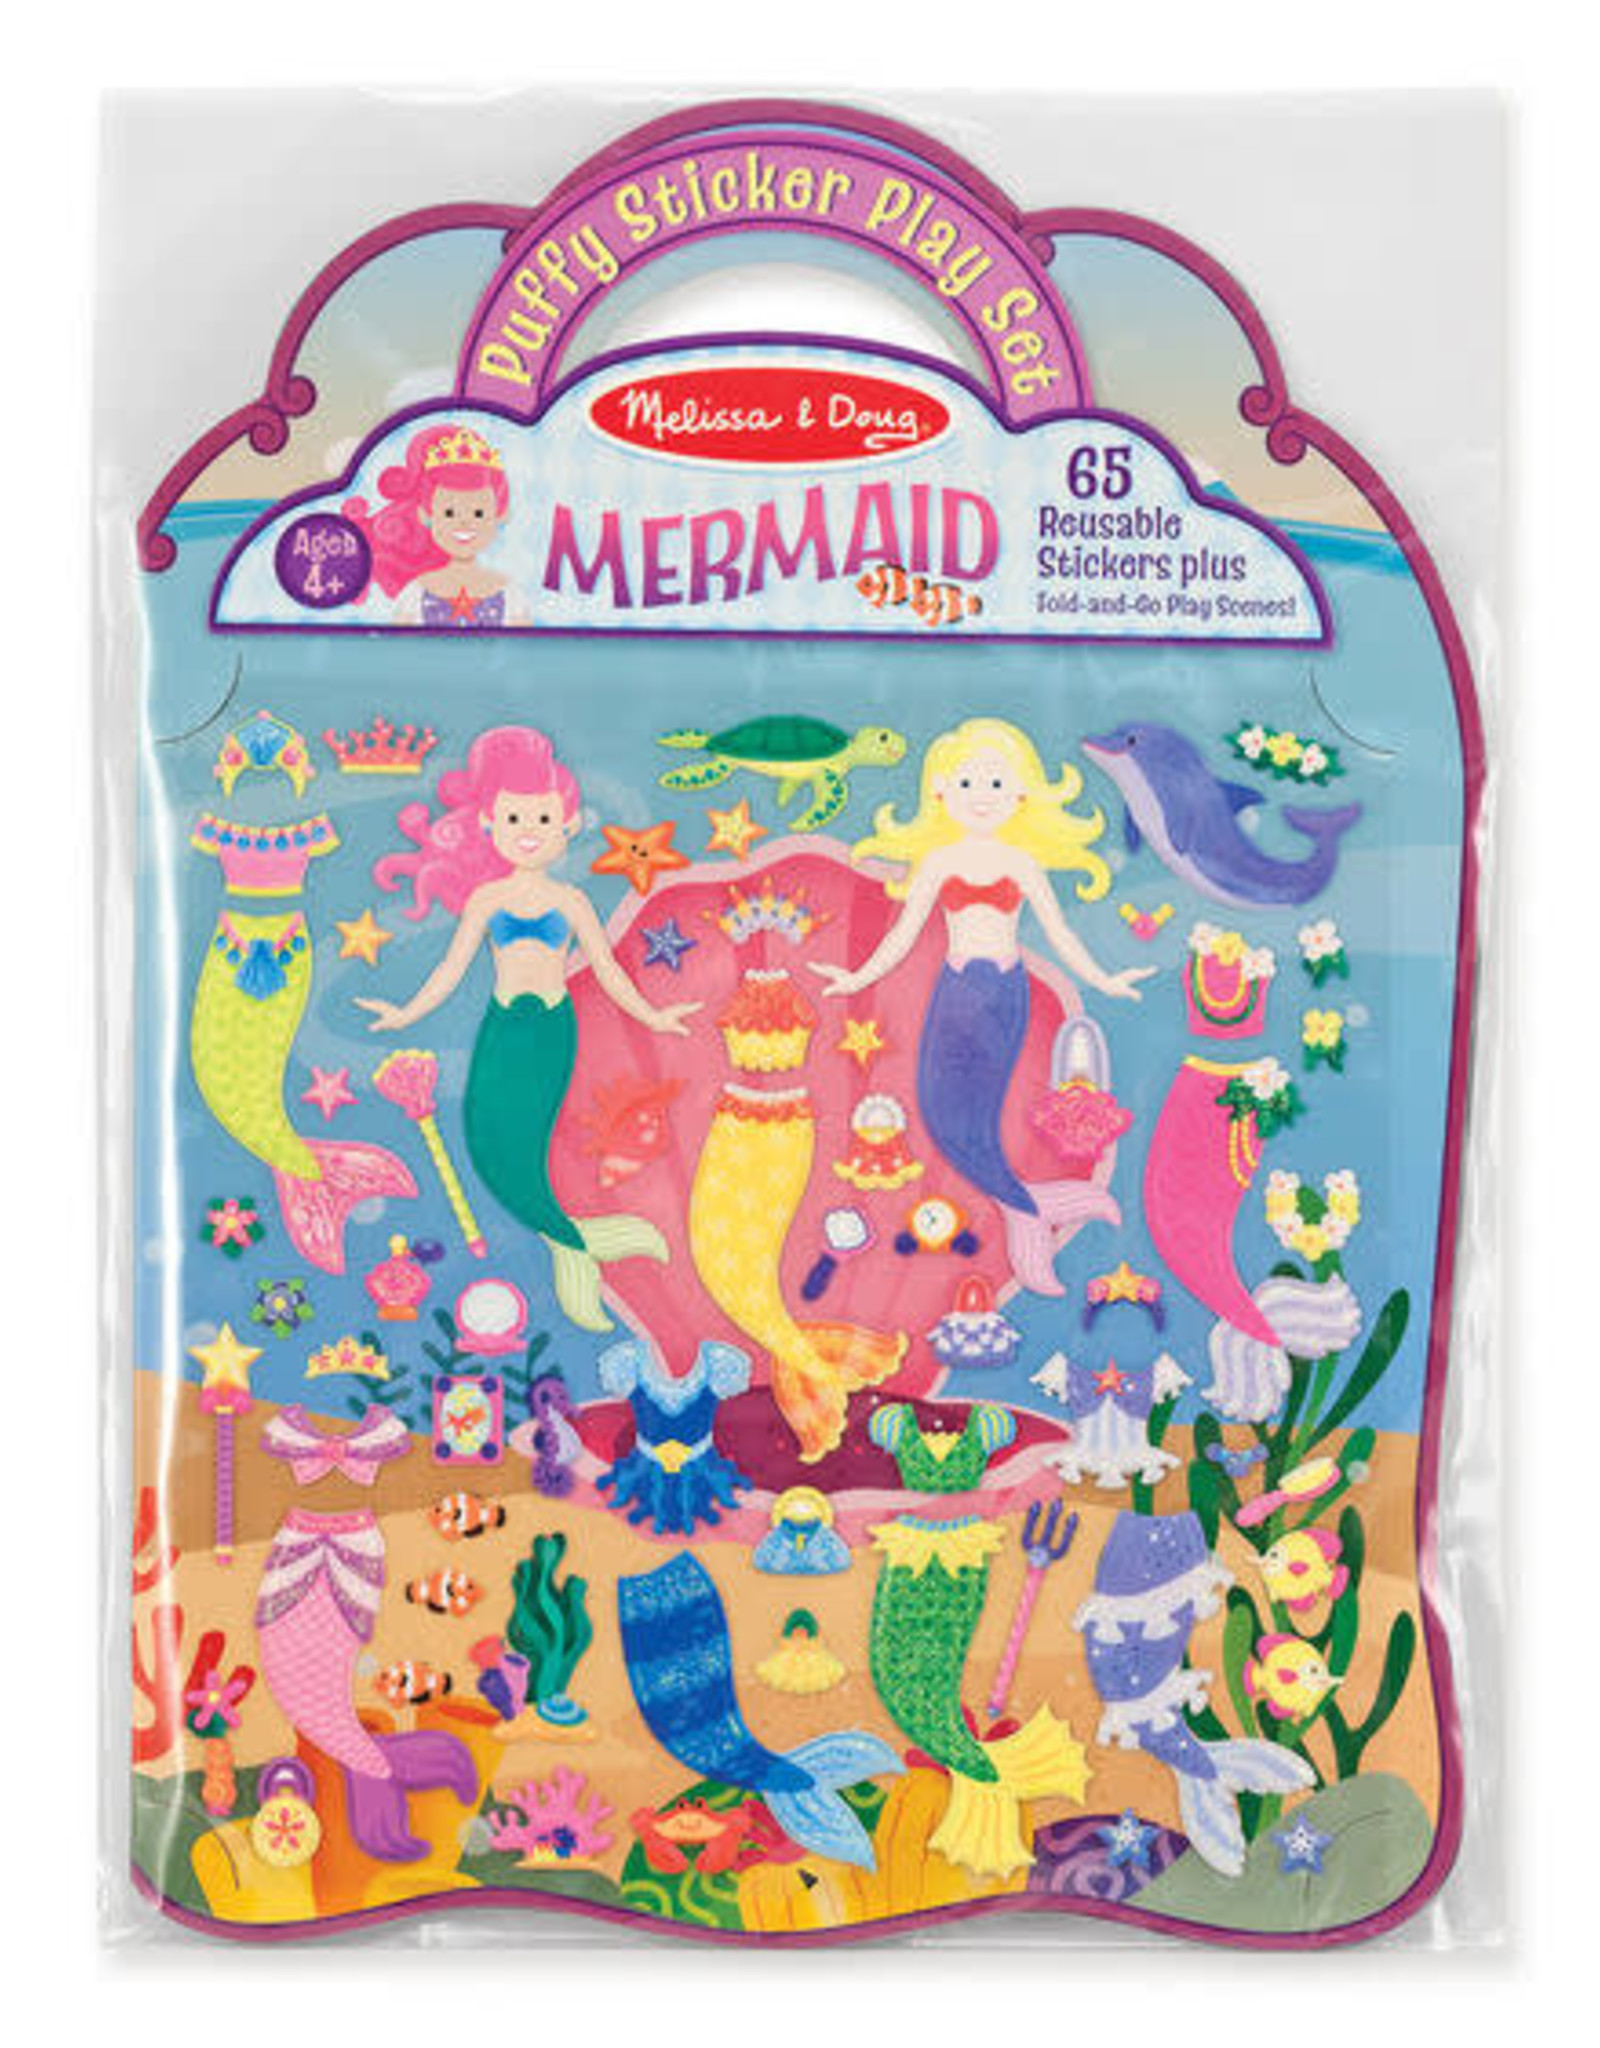 Melissa & Doug MD Puffy Stickers Mermaid